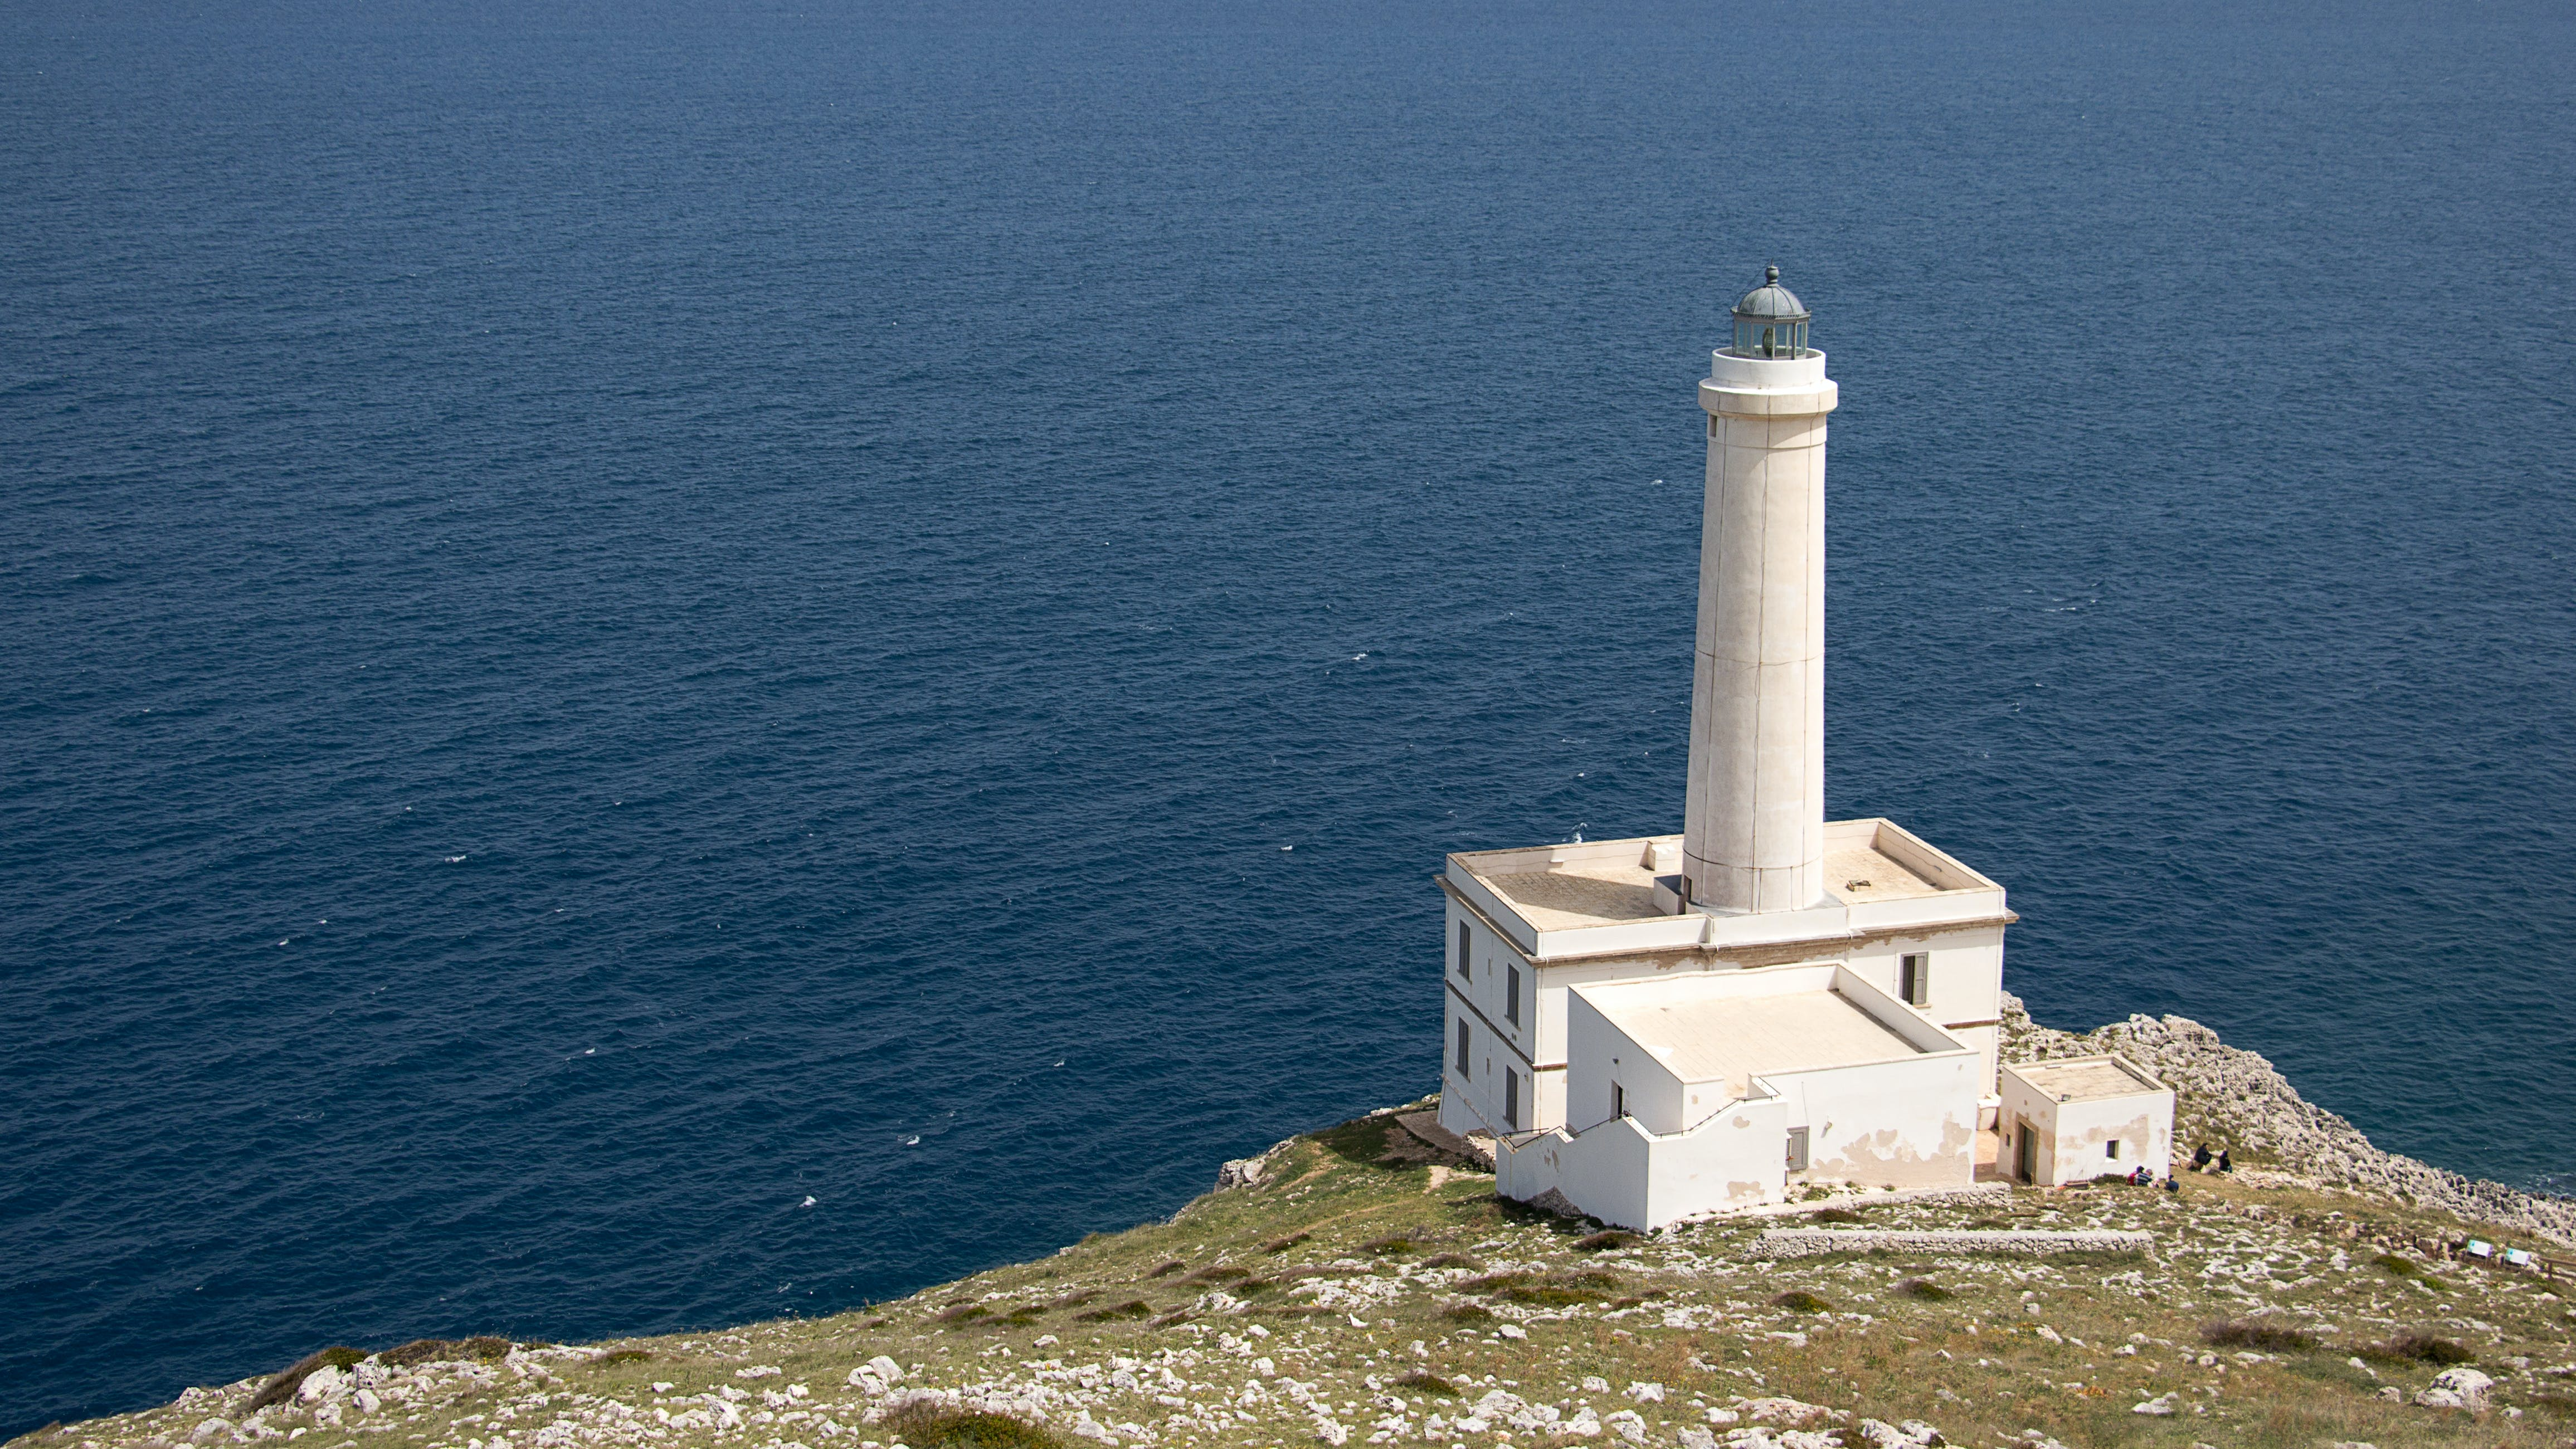 White Lighthouse on Cliff Near Body of Water